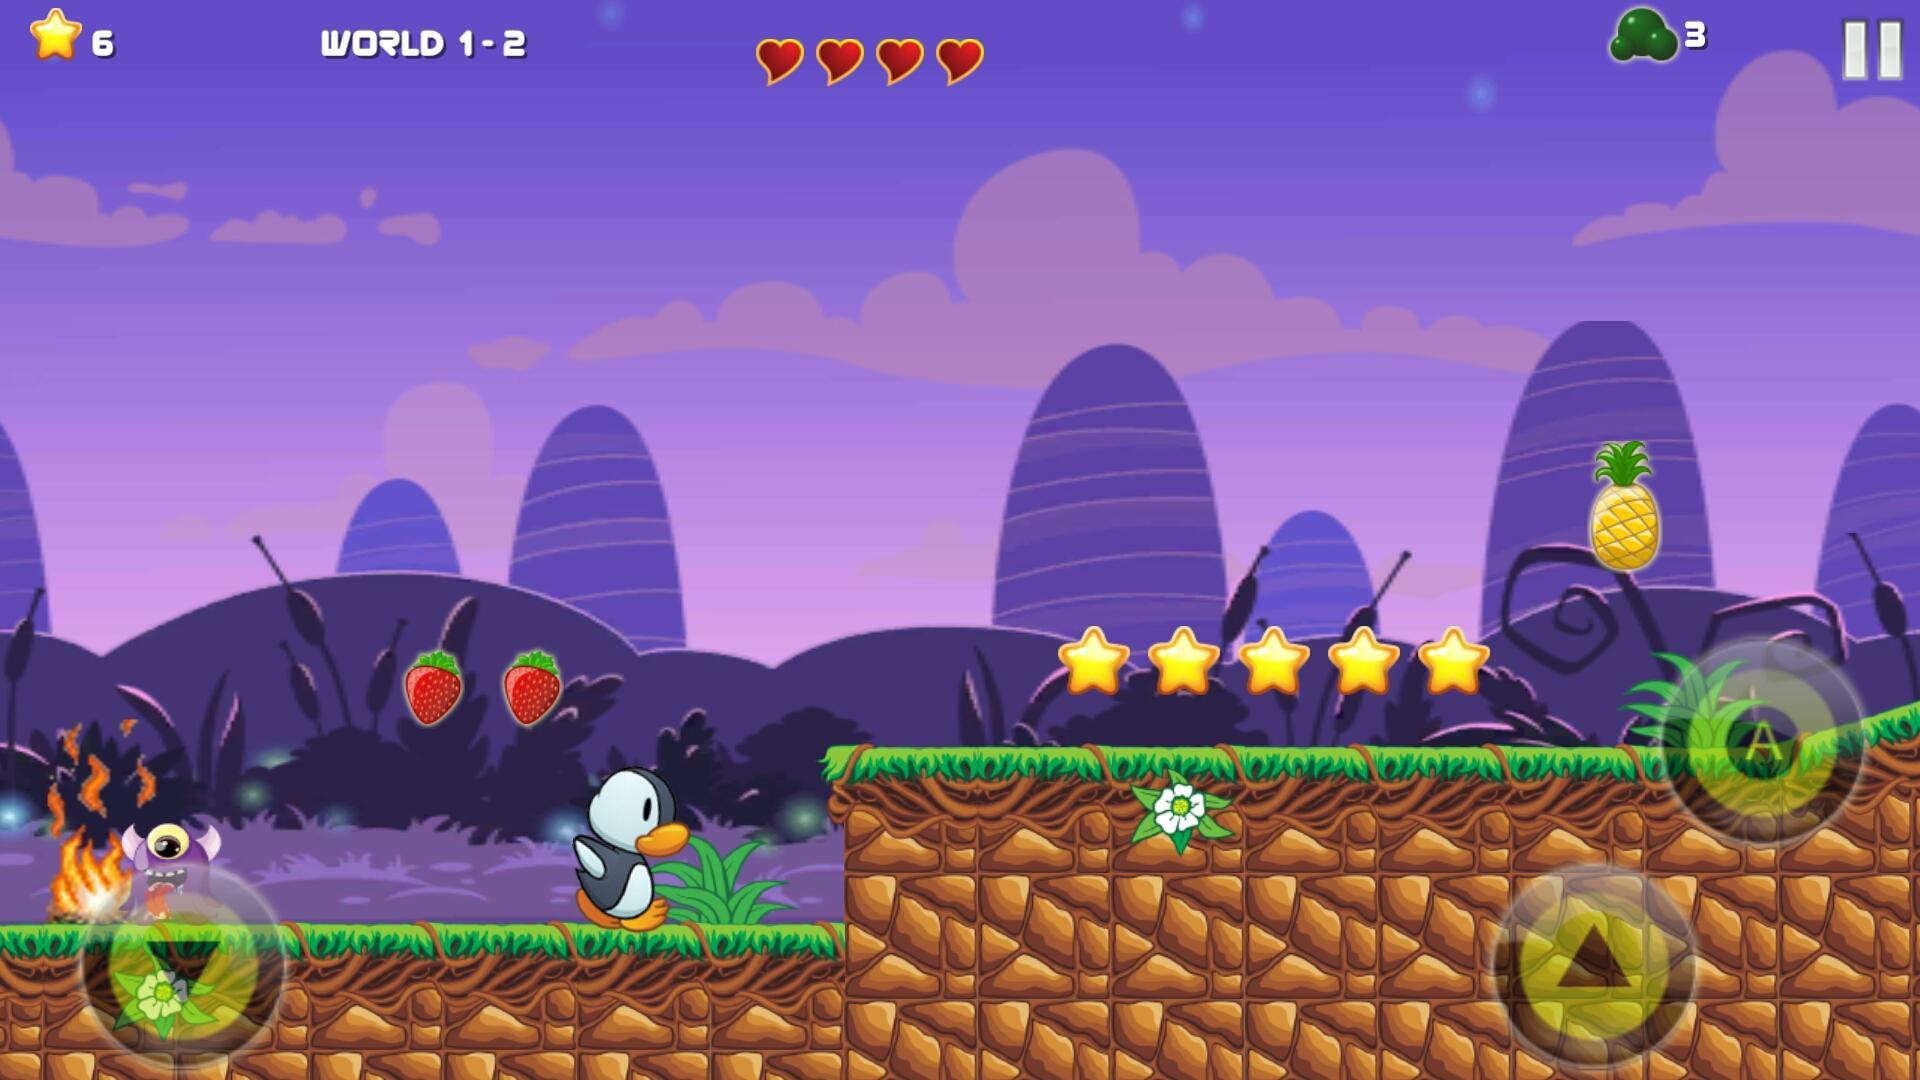 Pingy Wingy for Android - APK Download